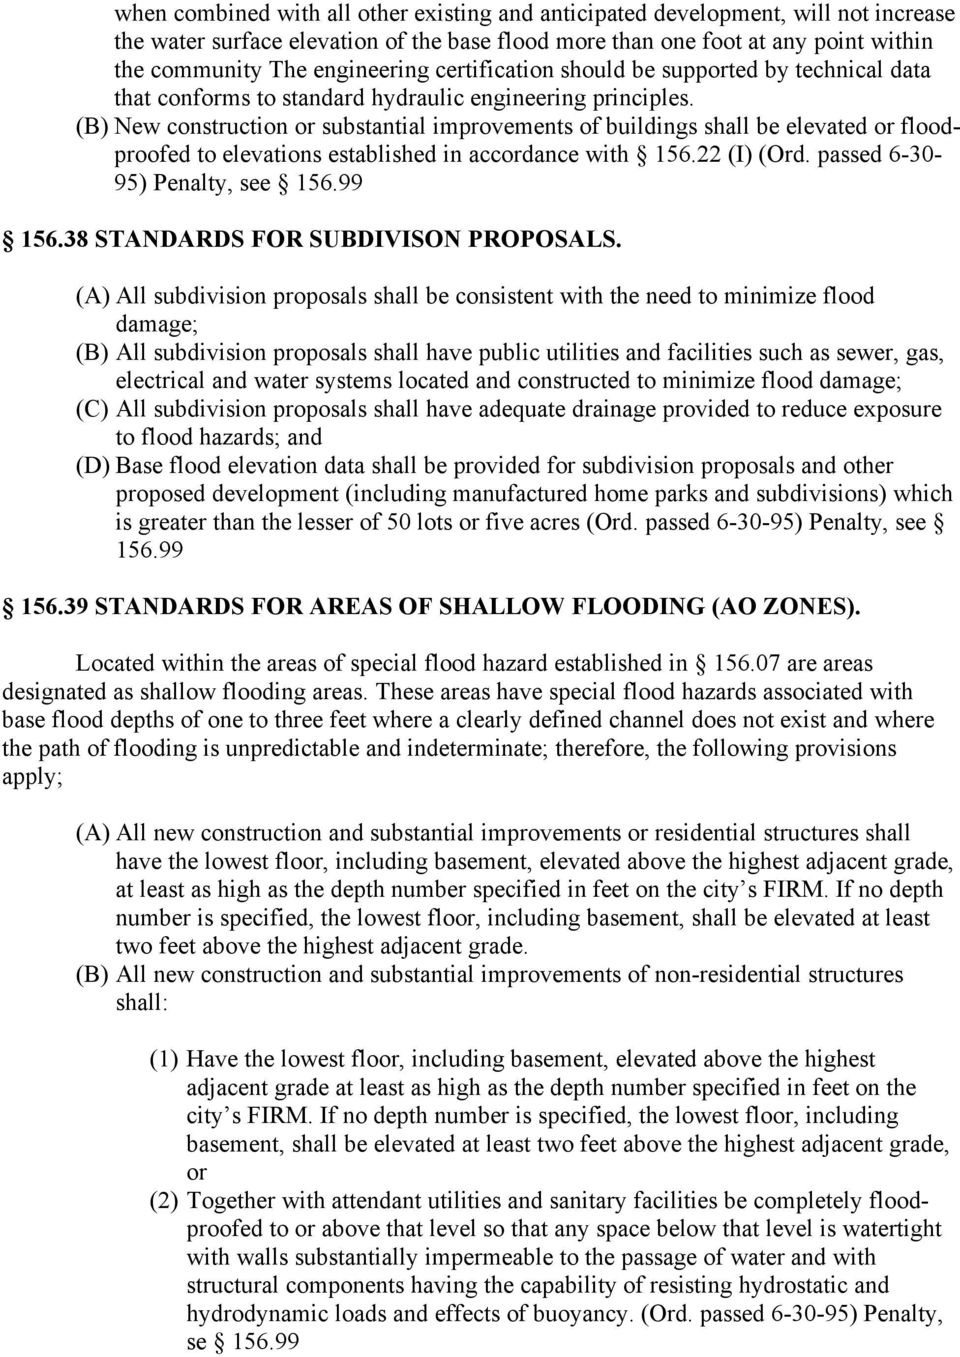 (B) New construction or substantial improvements of buildings shall be elevated or floodproofed to elevations established in accordance with 156.22 (I) (Ord. passed 6-30- 95) Penalty, see 156.99 156.